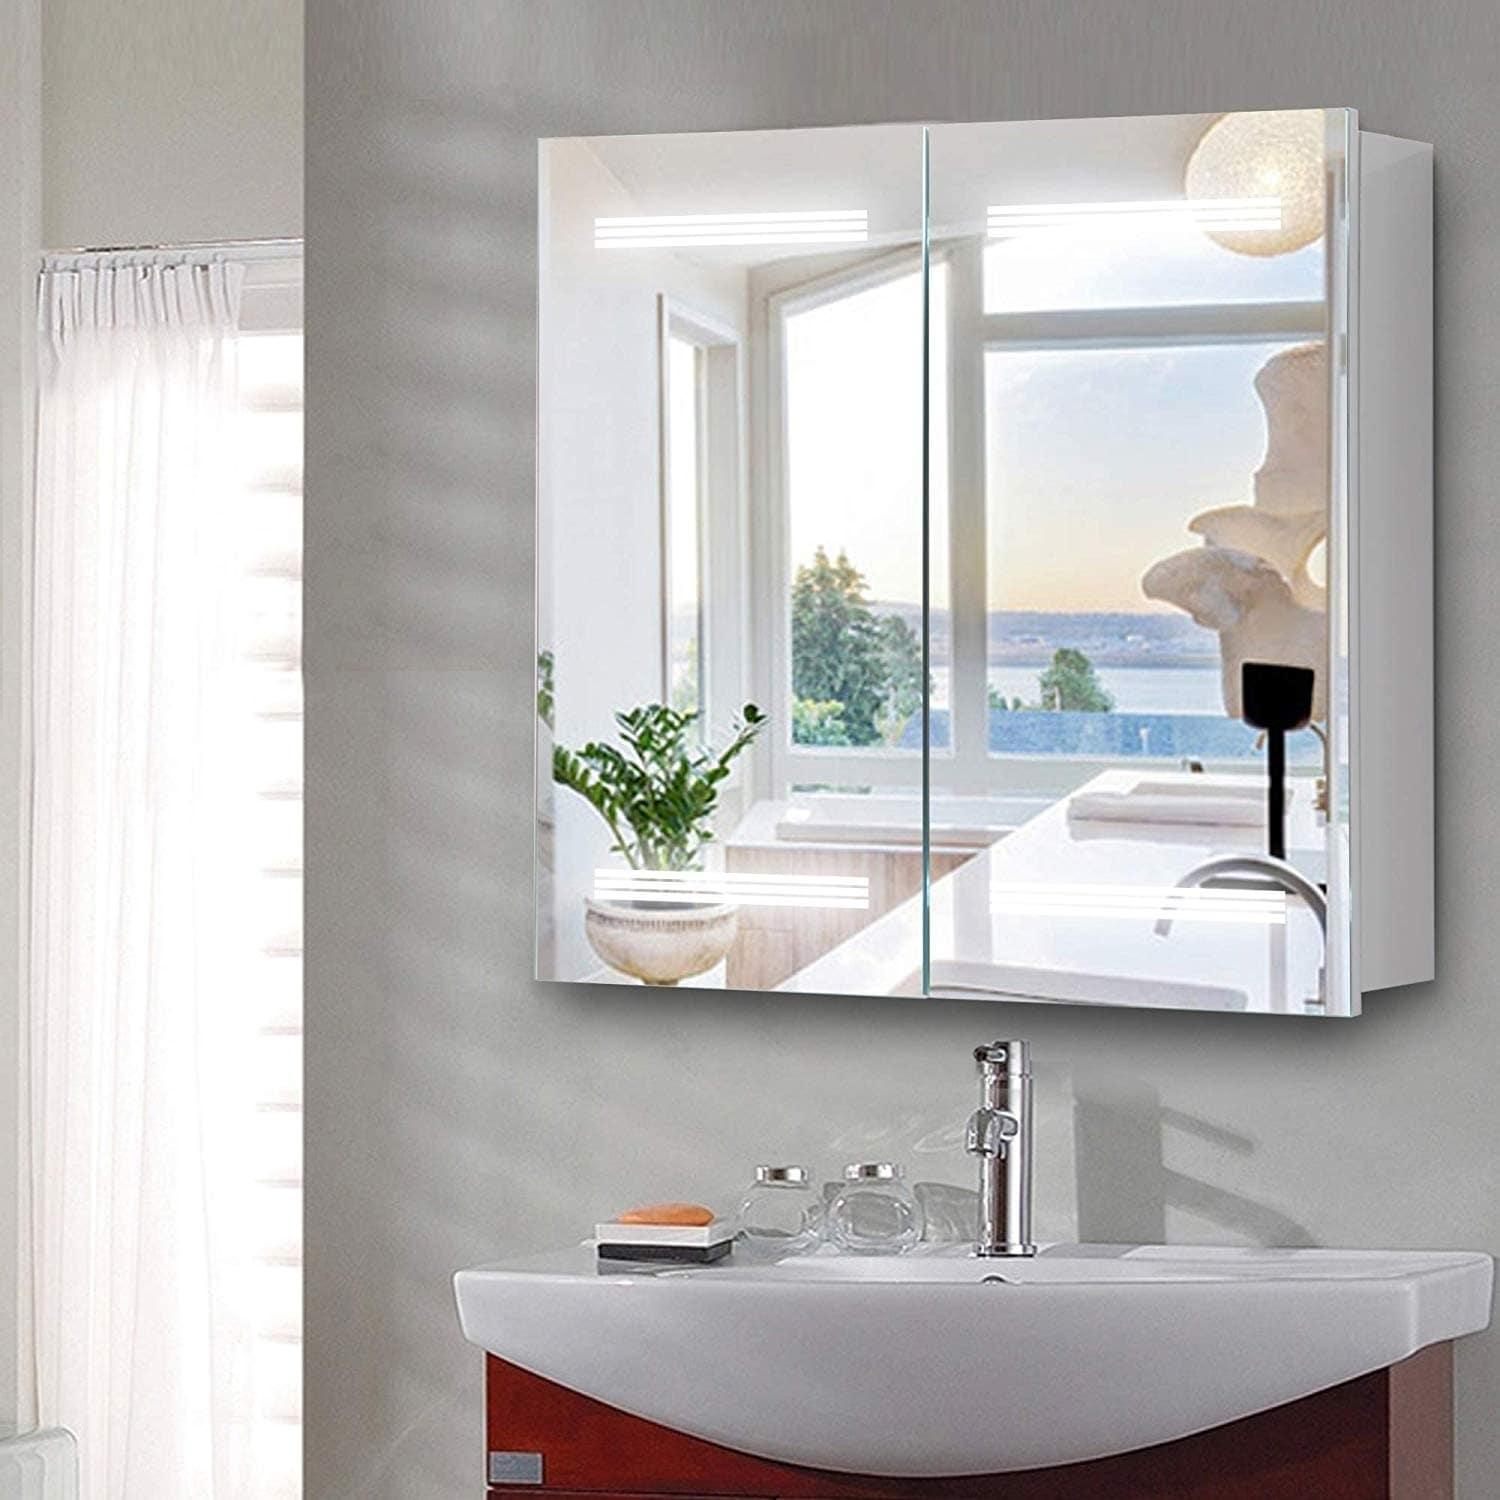 Vanity Art 26 Inch Rectangle Led Lighted Illuminated Vertical Bathroom Vanity Mirror Wooden Medicine Cabinet With Rock Switch On Sale Overstock 12364407